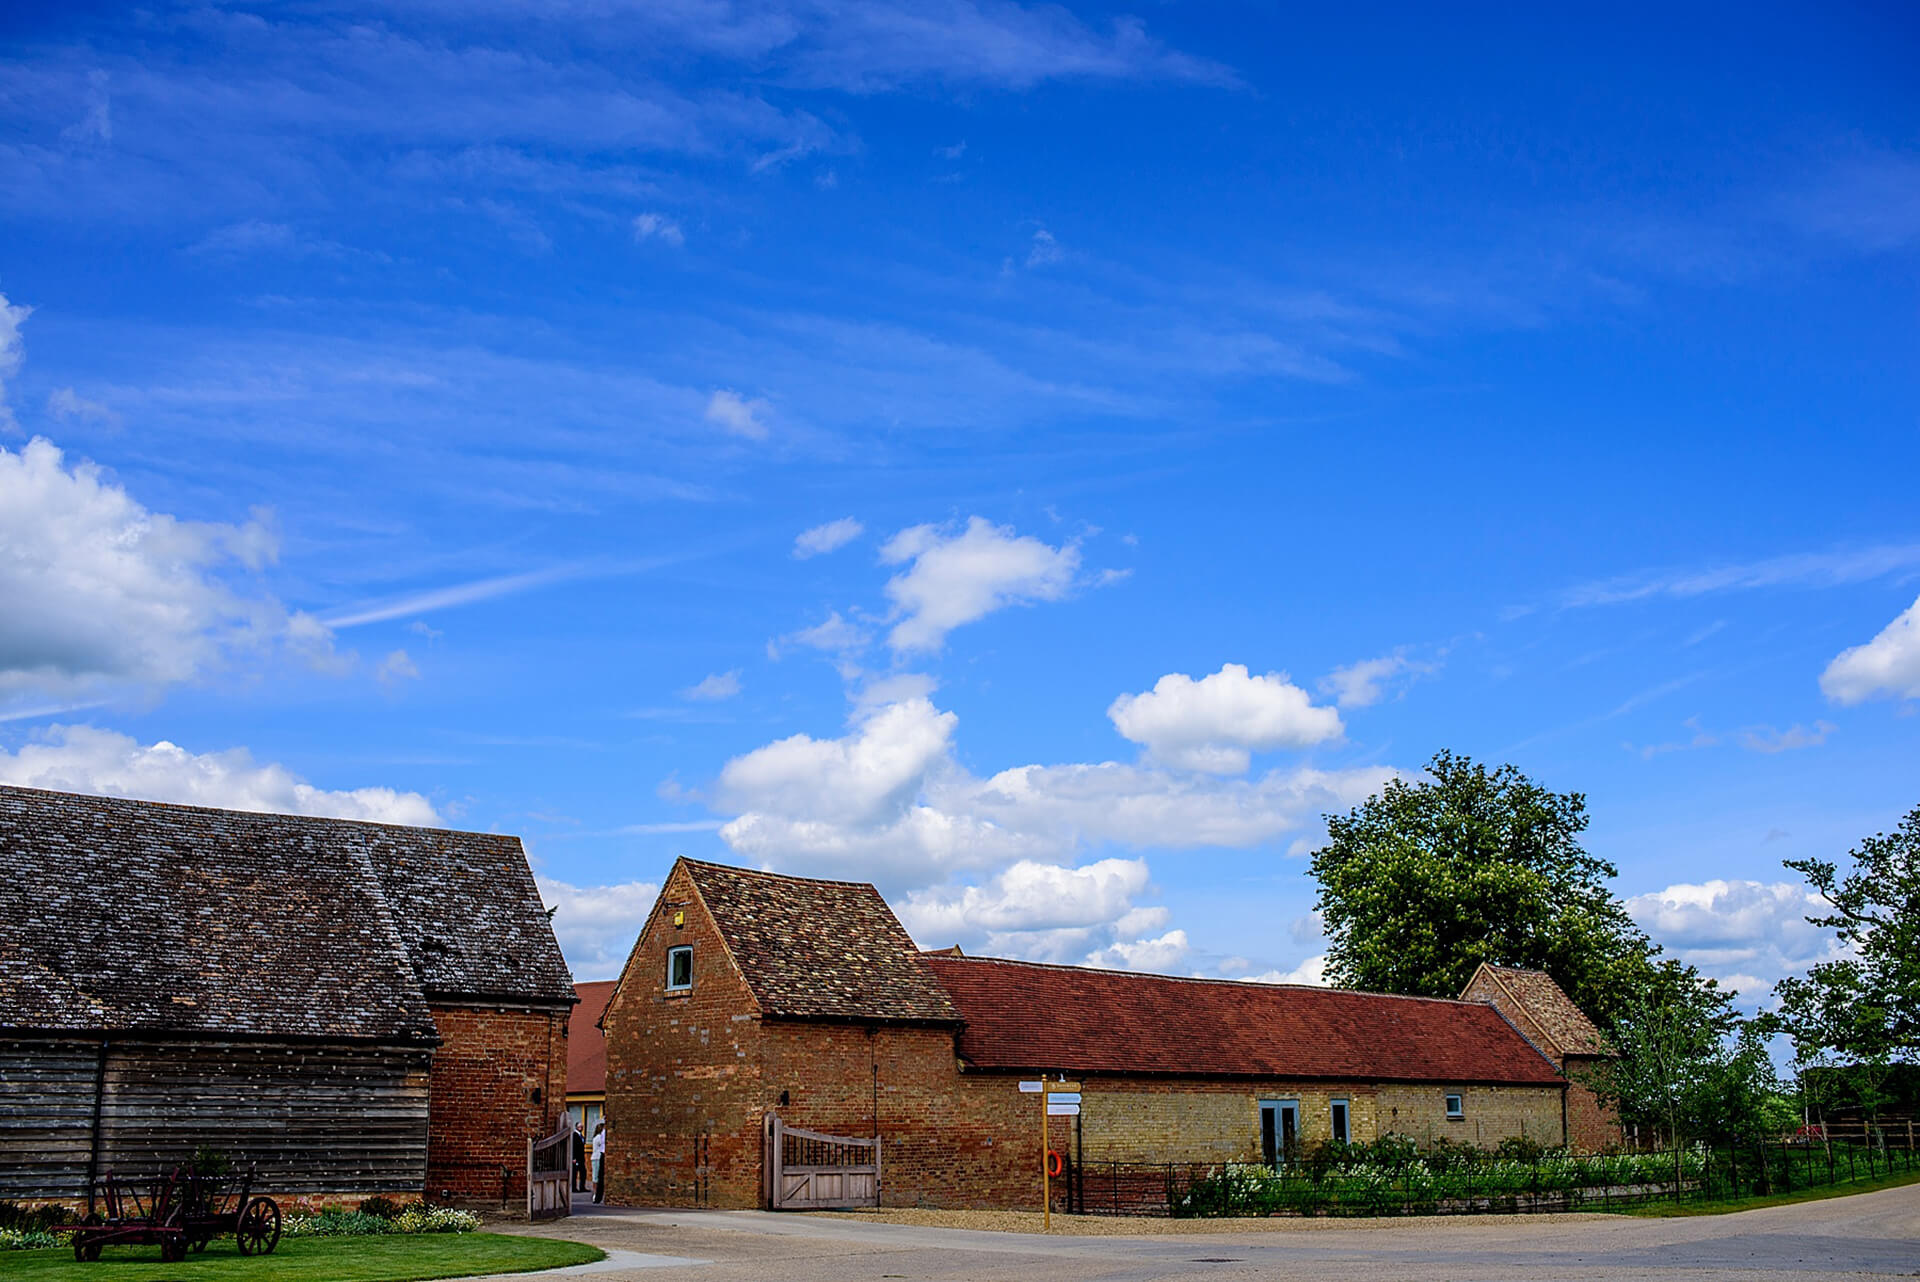 This beautiful contemporary wedding barn is one of the finest wedding venues in Cambridgeshire